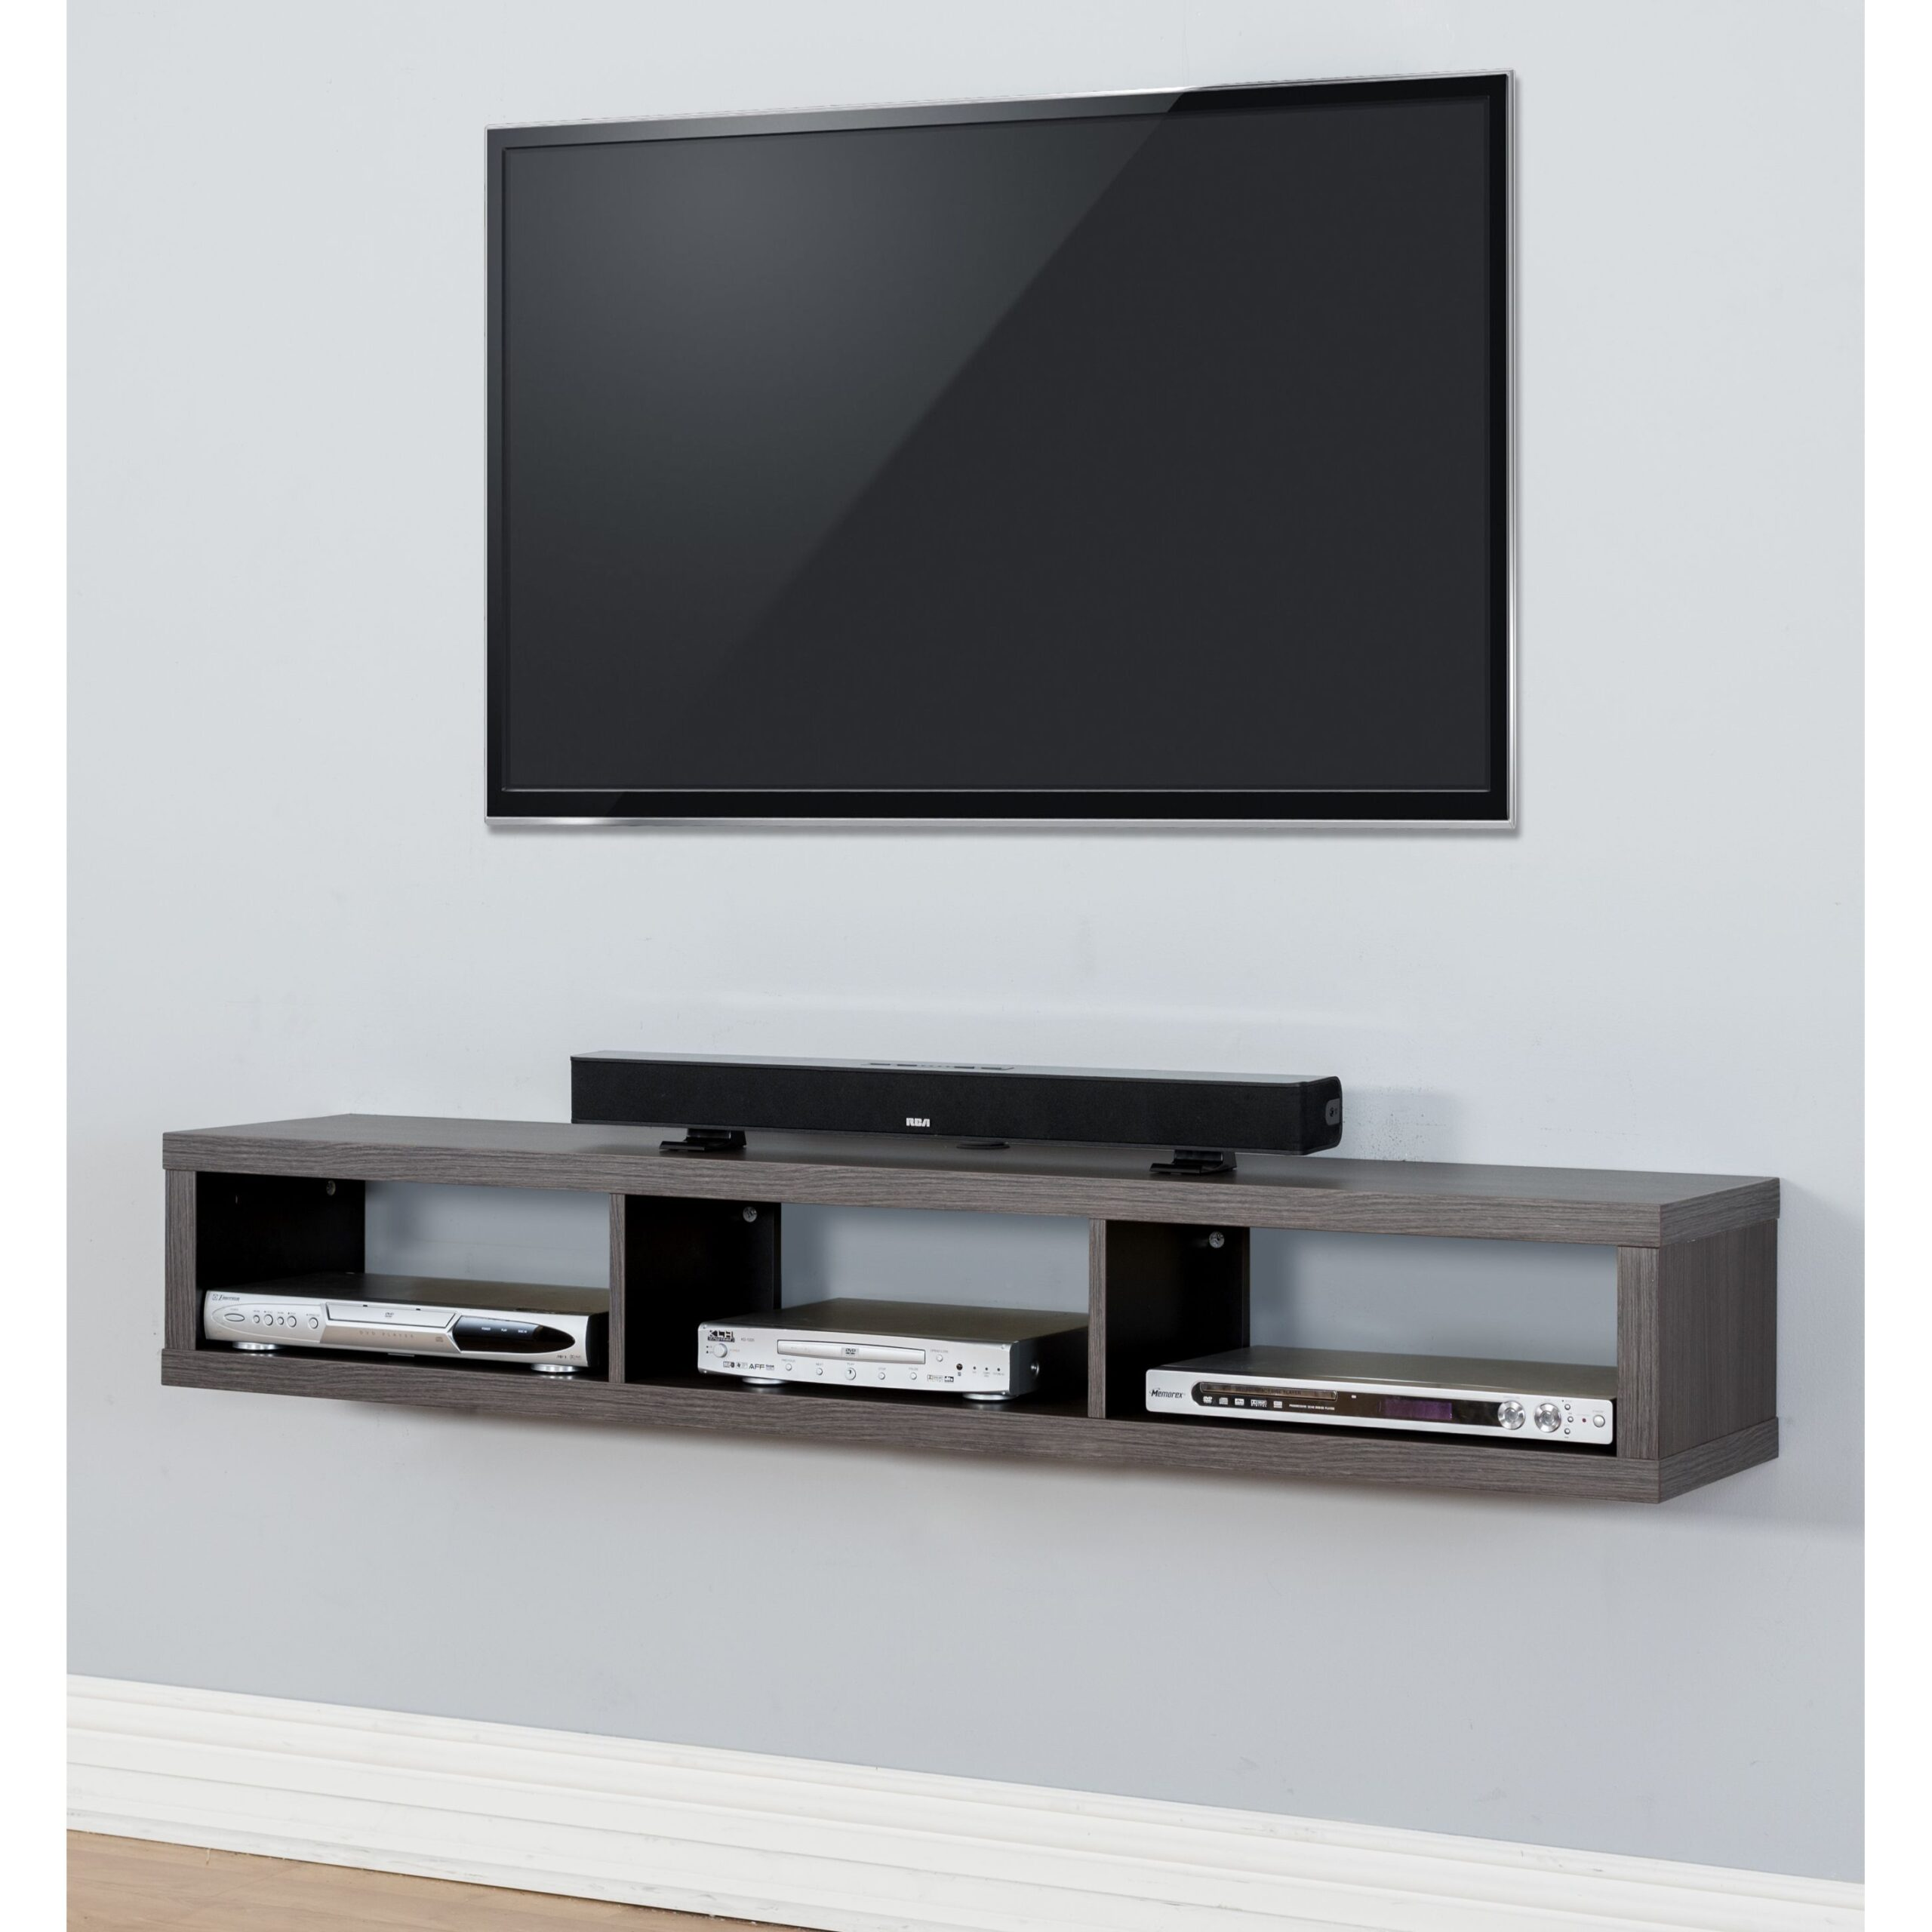 How to Mount a 60 Inch TV to the Wall: Helpful Tips for Mounting